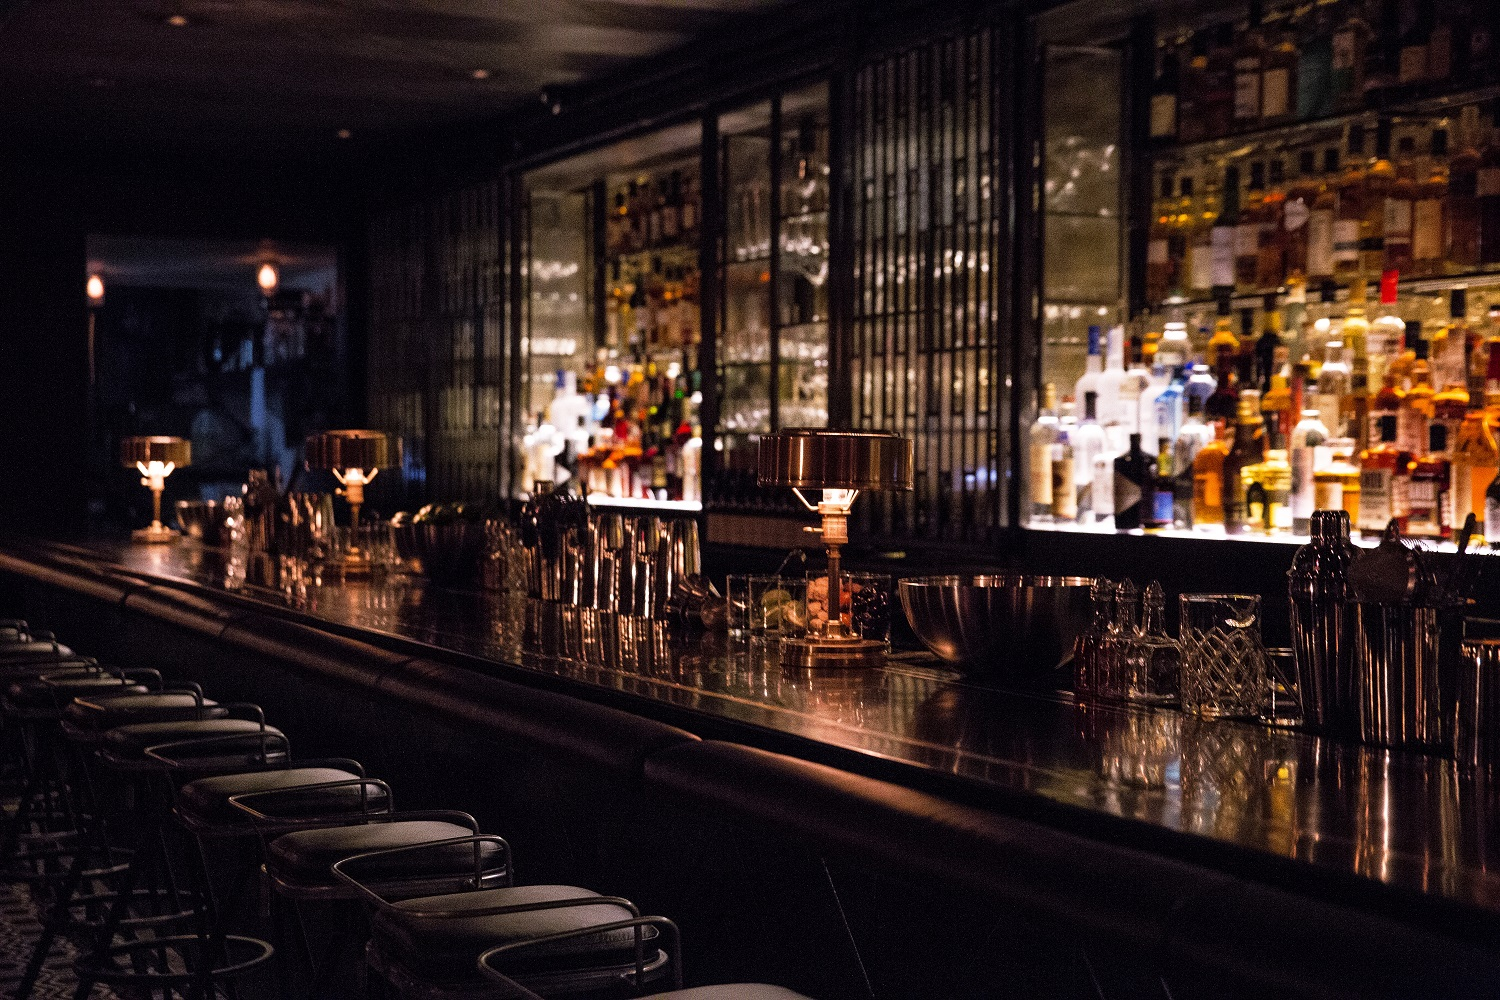 studio-saint-bars-and-restaurants-denson-washington-dc-8